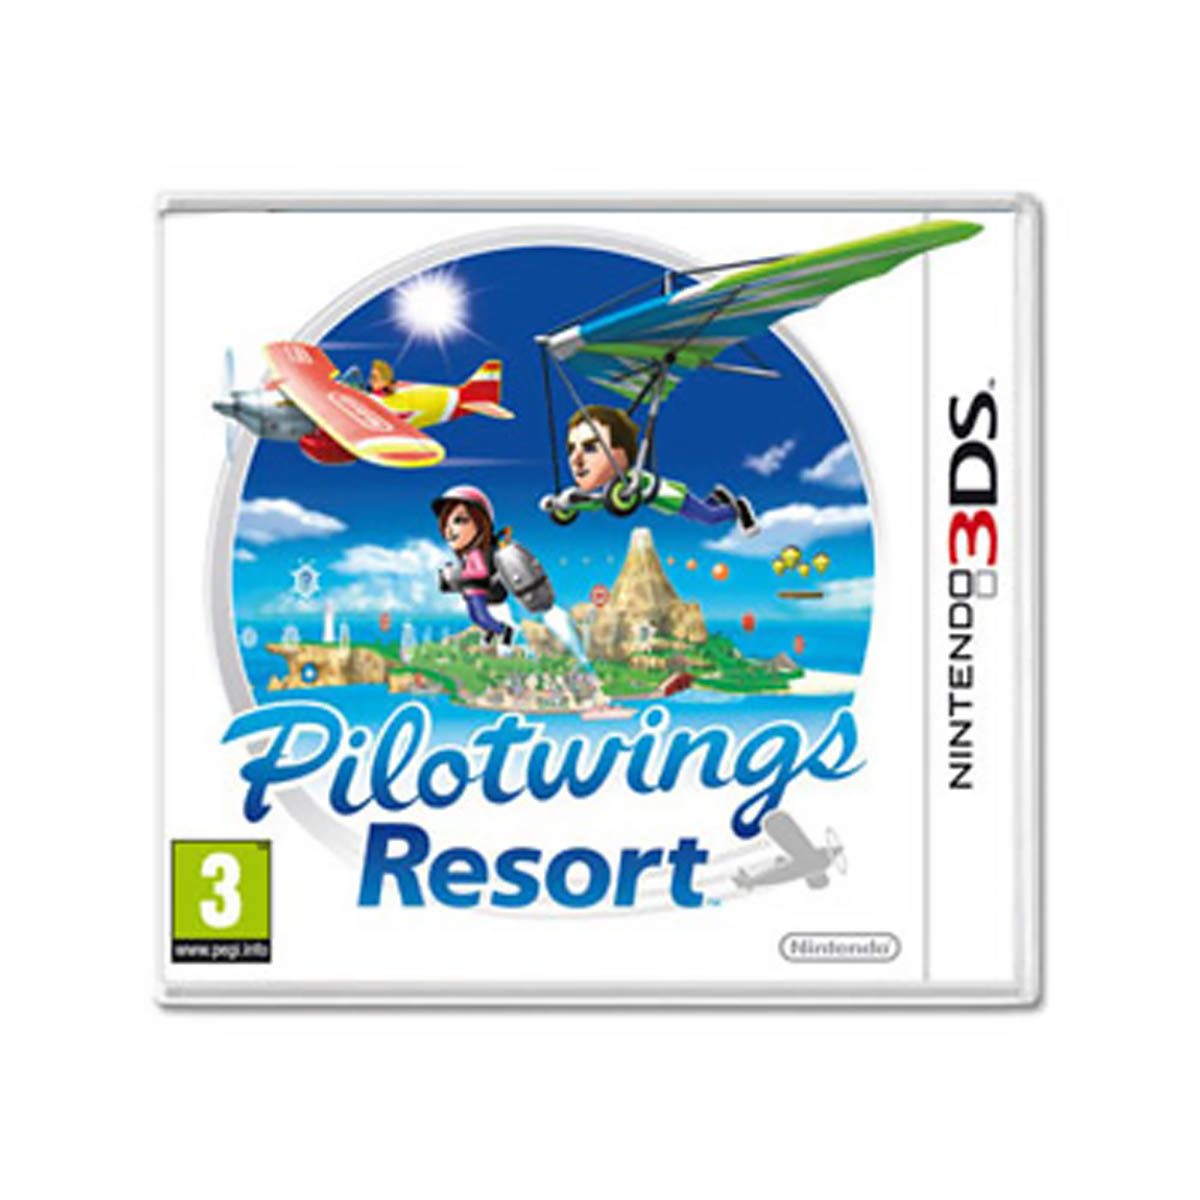 pilotwinds-resort